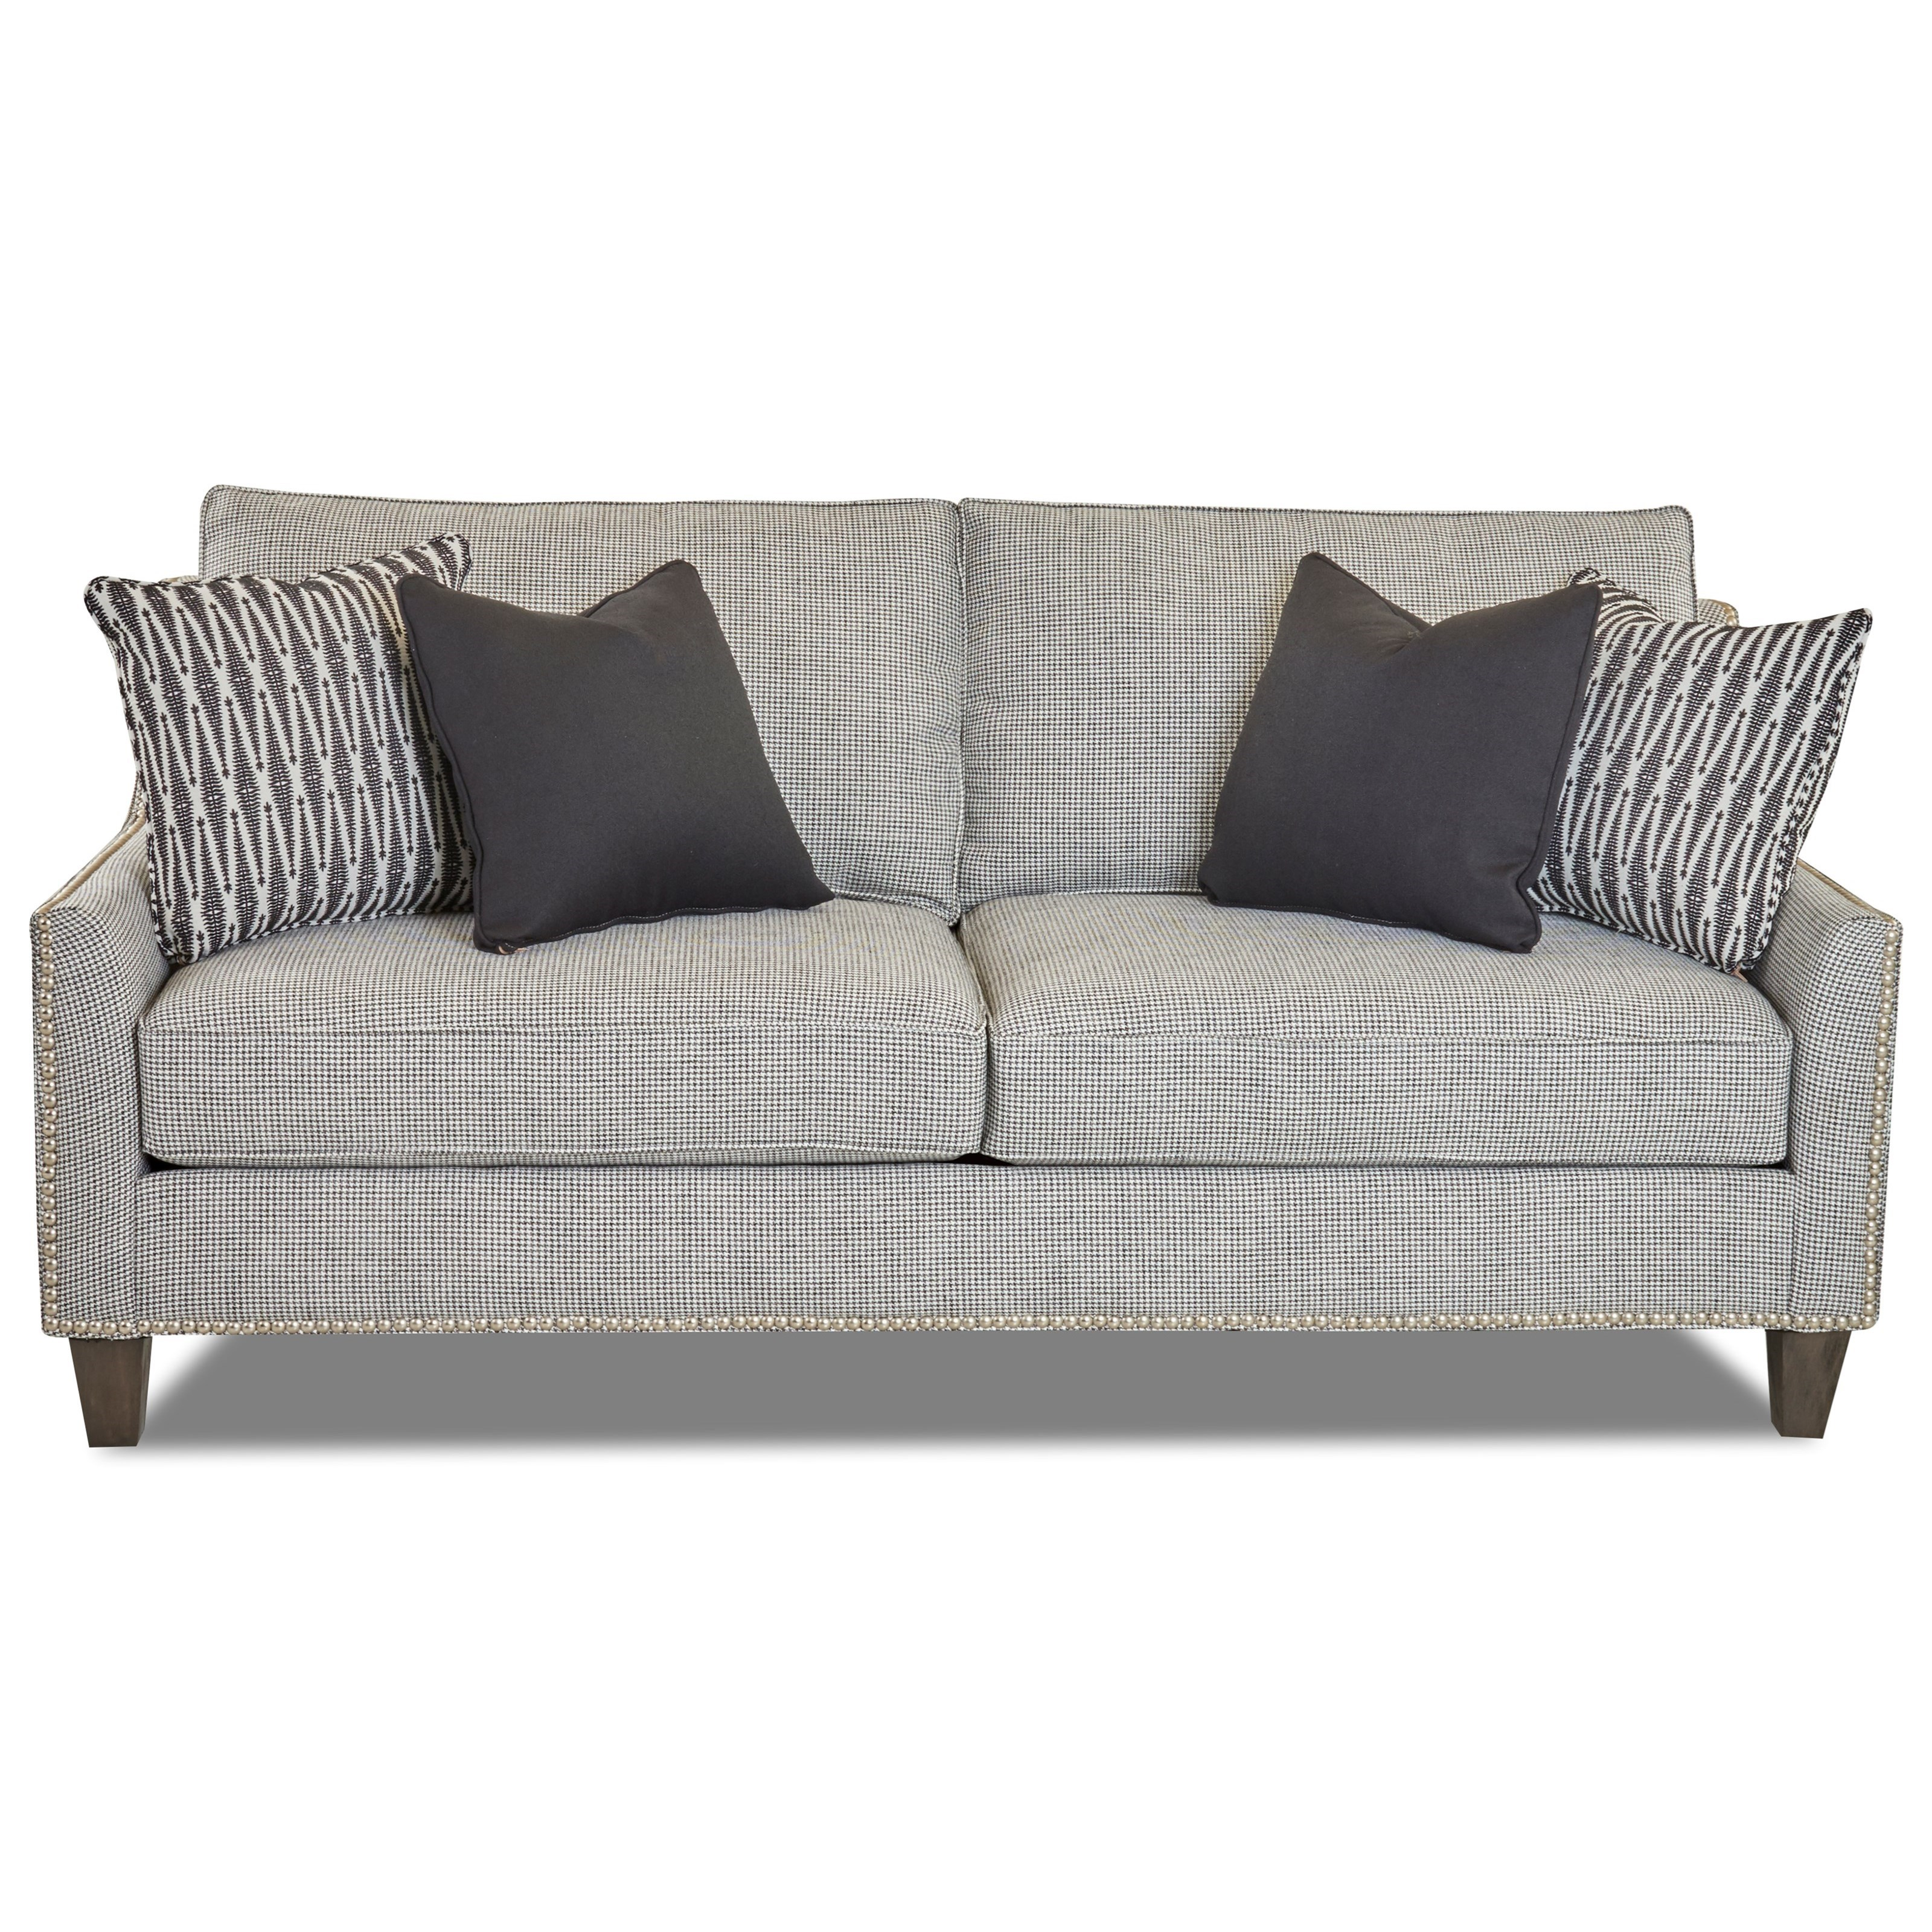 Transitional Apartment-Sized Sofa with Nailhead Trim by ...